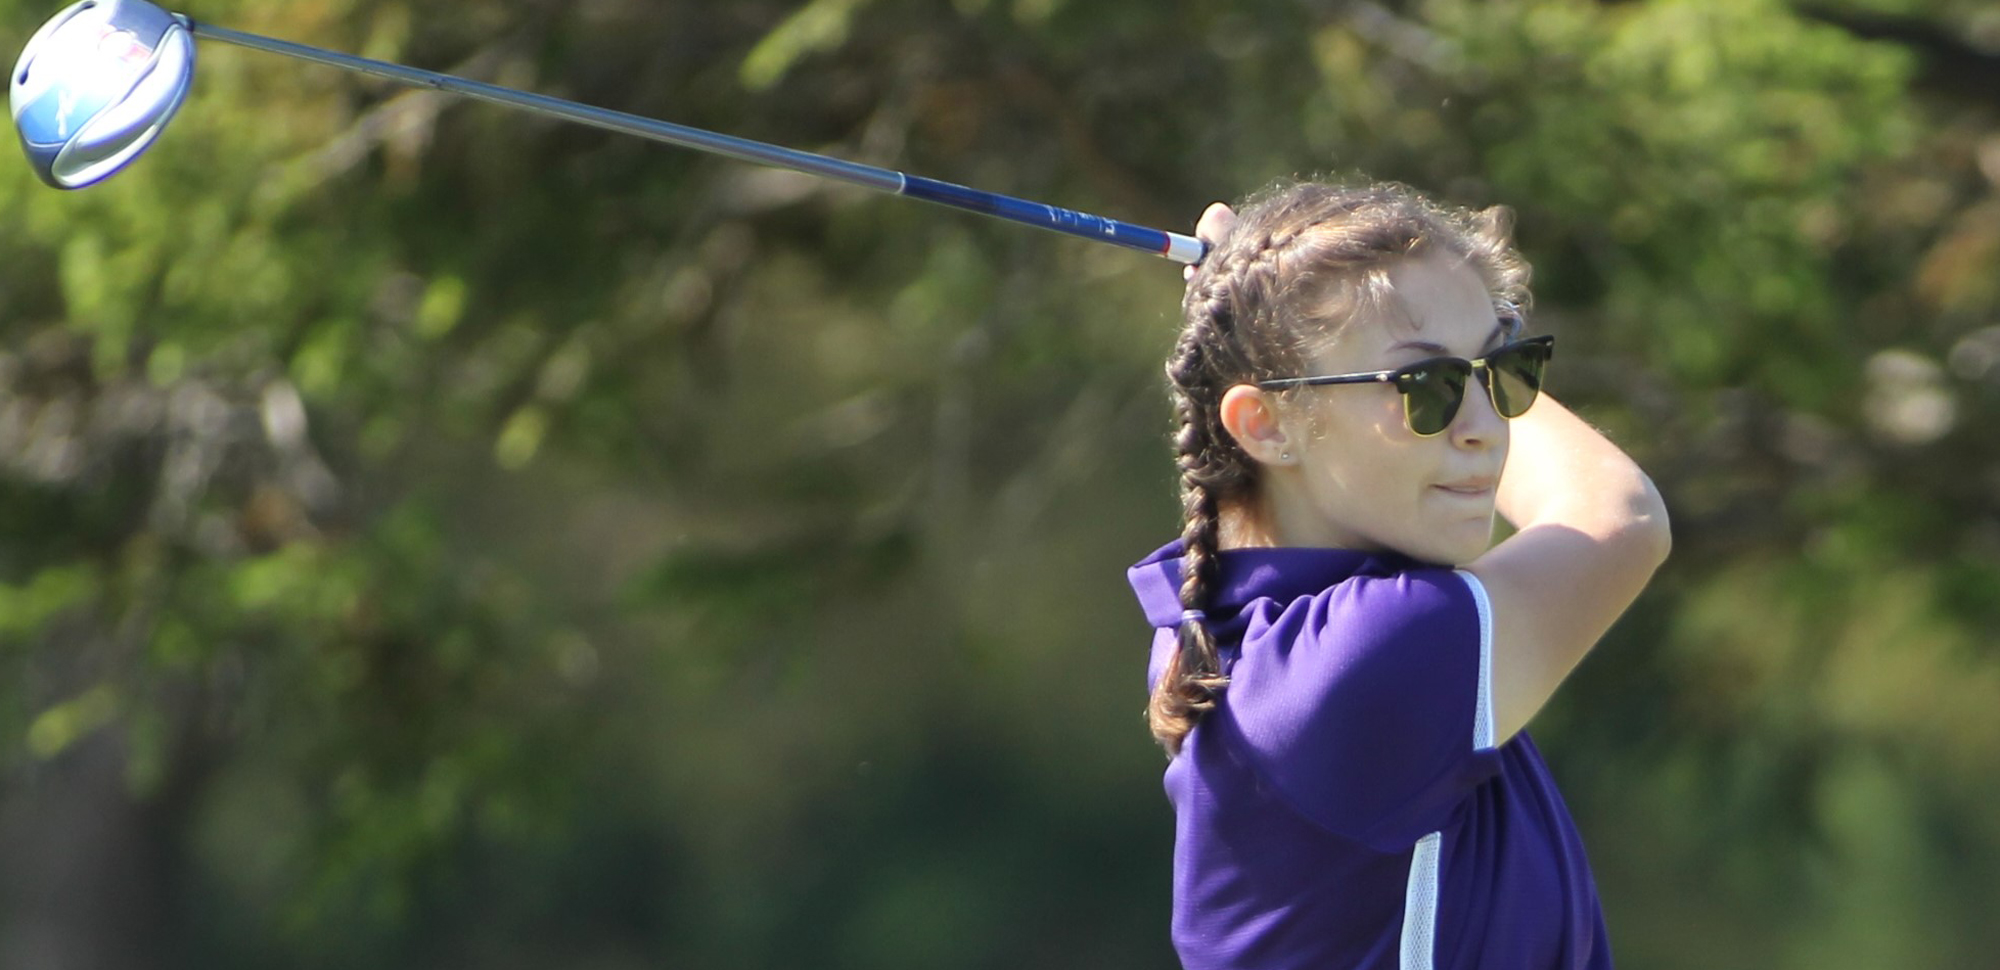 Sophomore Emma Nemitz finished in a tie for third on Tuesday at the Drew Invitational, posting the lowest score on the day for the Royals. © Photo by Timothy R. Dougherty / doubleeaglephotography.com